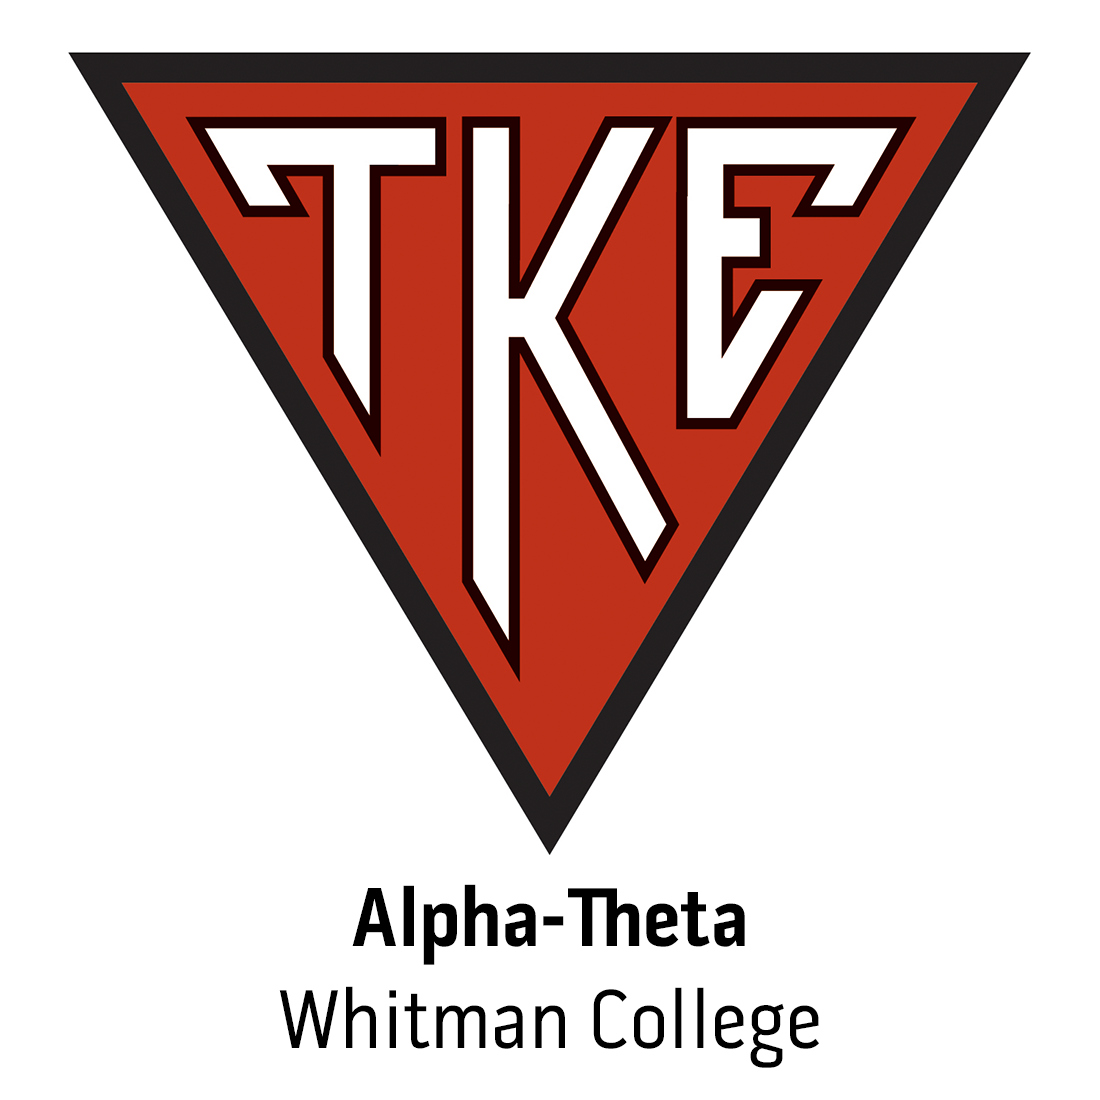 Alpha-Theta Chapter at Whitman College